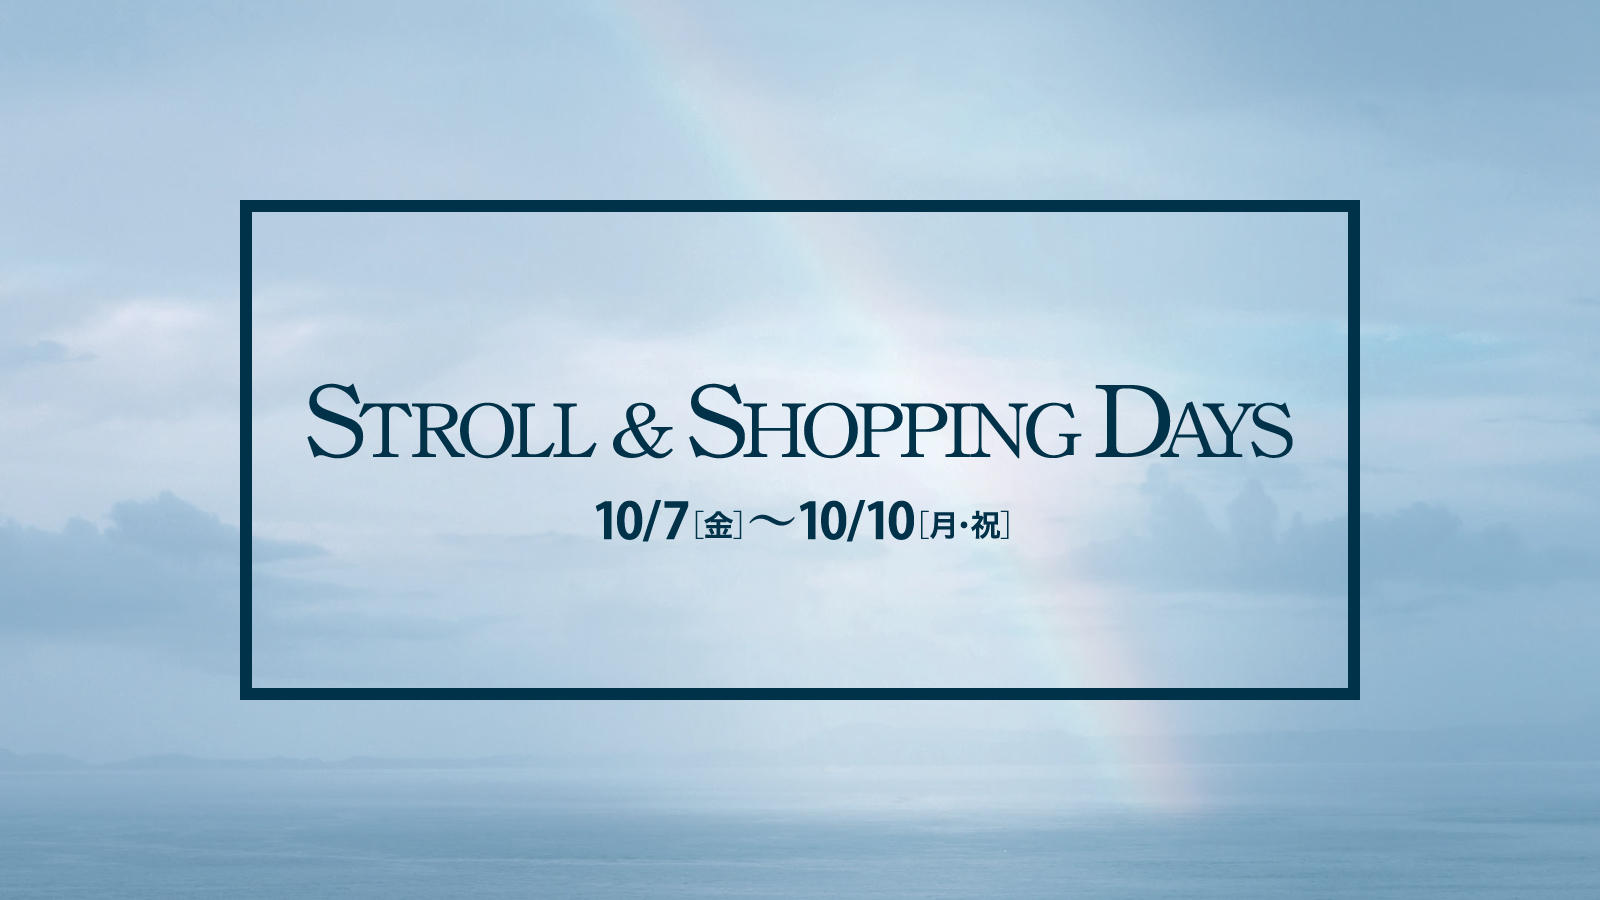 10/7(fri)-10/10(mon)『STROLL&SHOPPING DAYS』